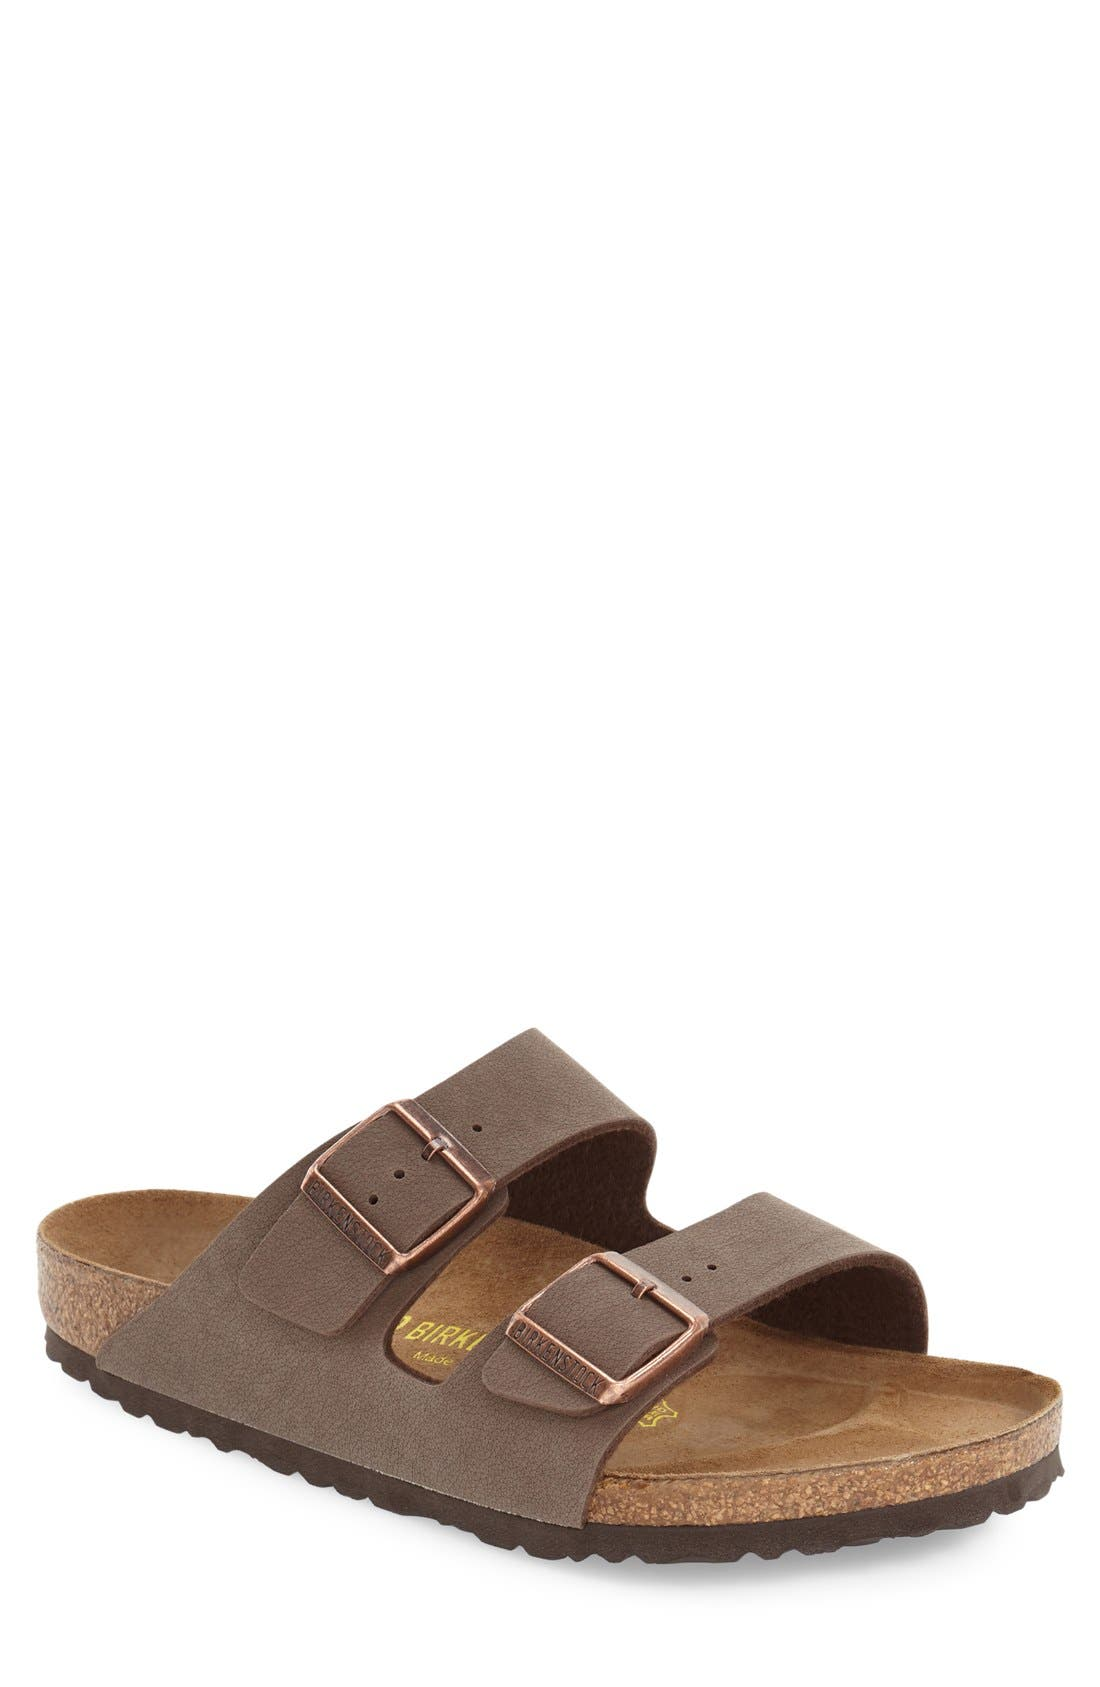 ,                             'Arizona' Slide Sandal,                             Main thumbnail 1, color,                             MOCHA